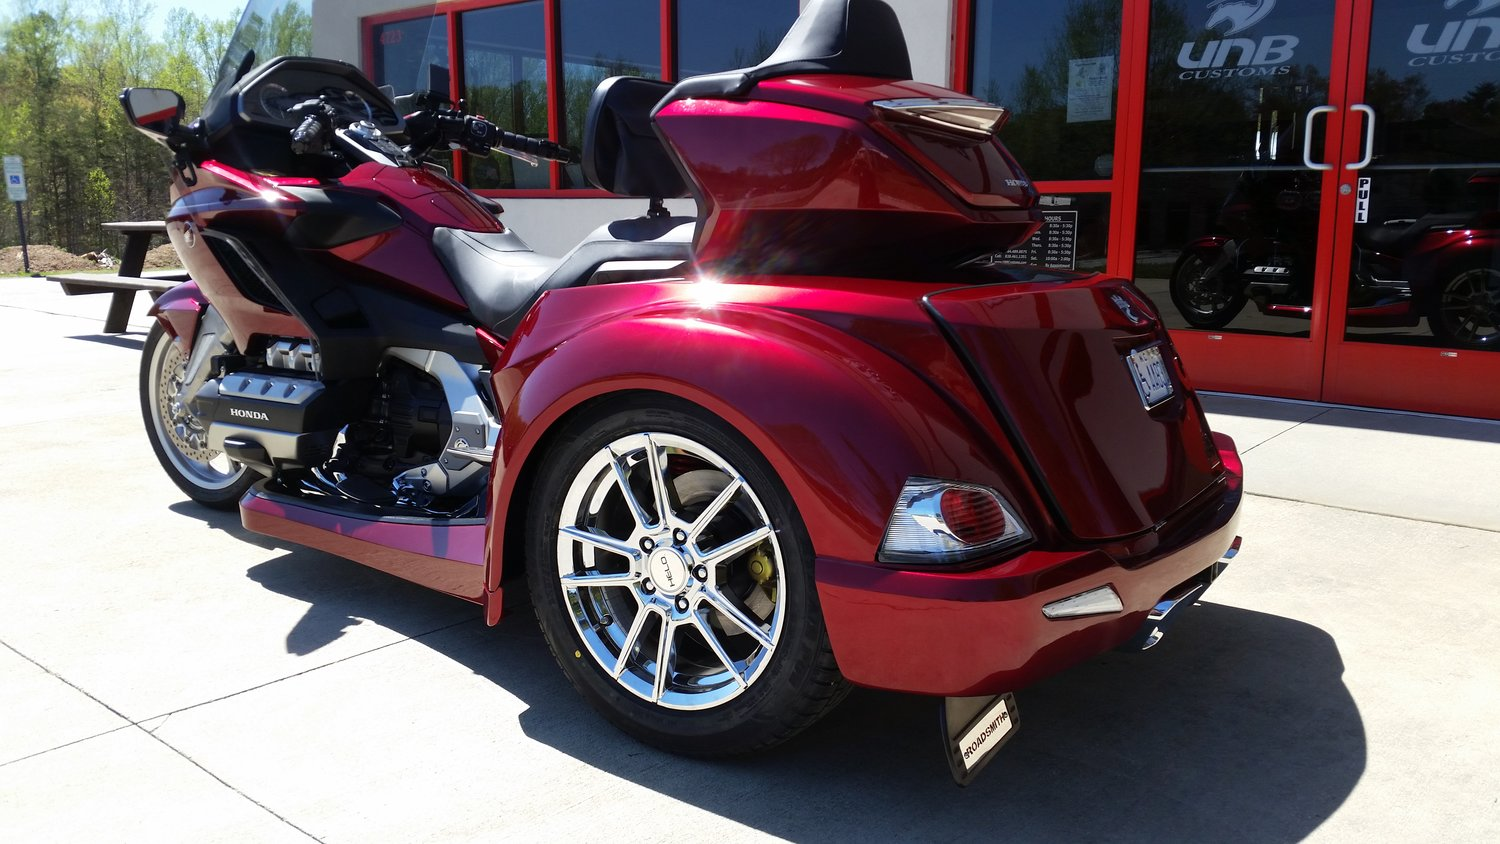 2018 goldwing trike red